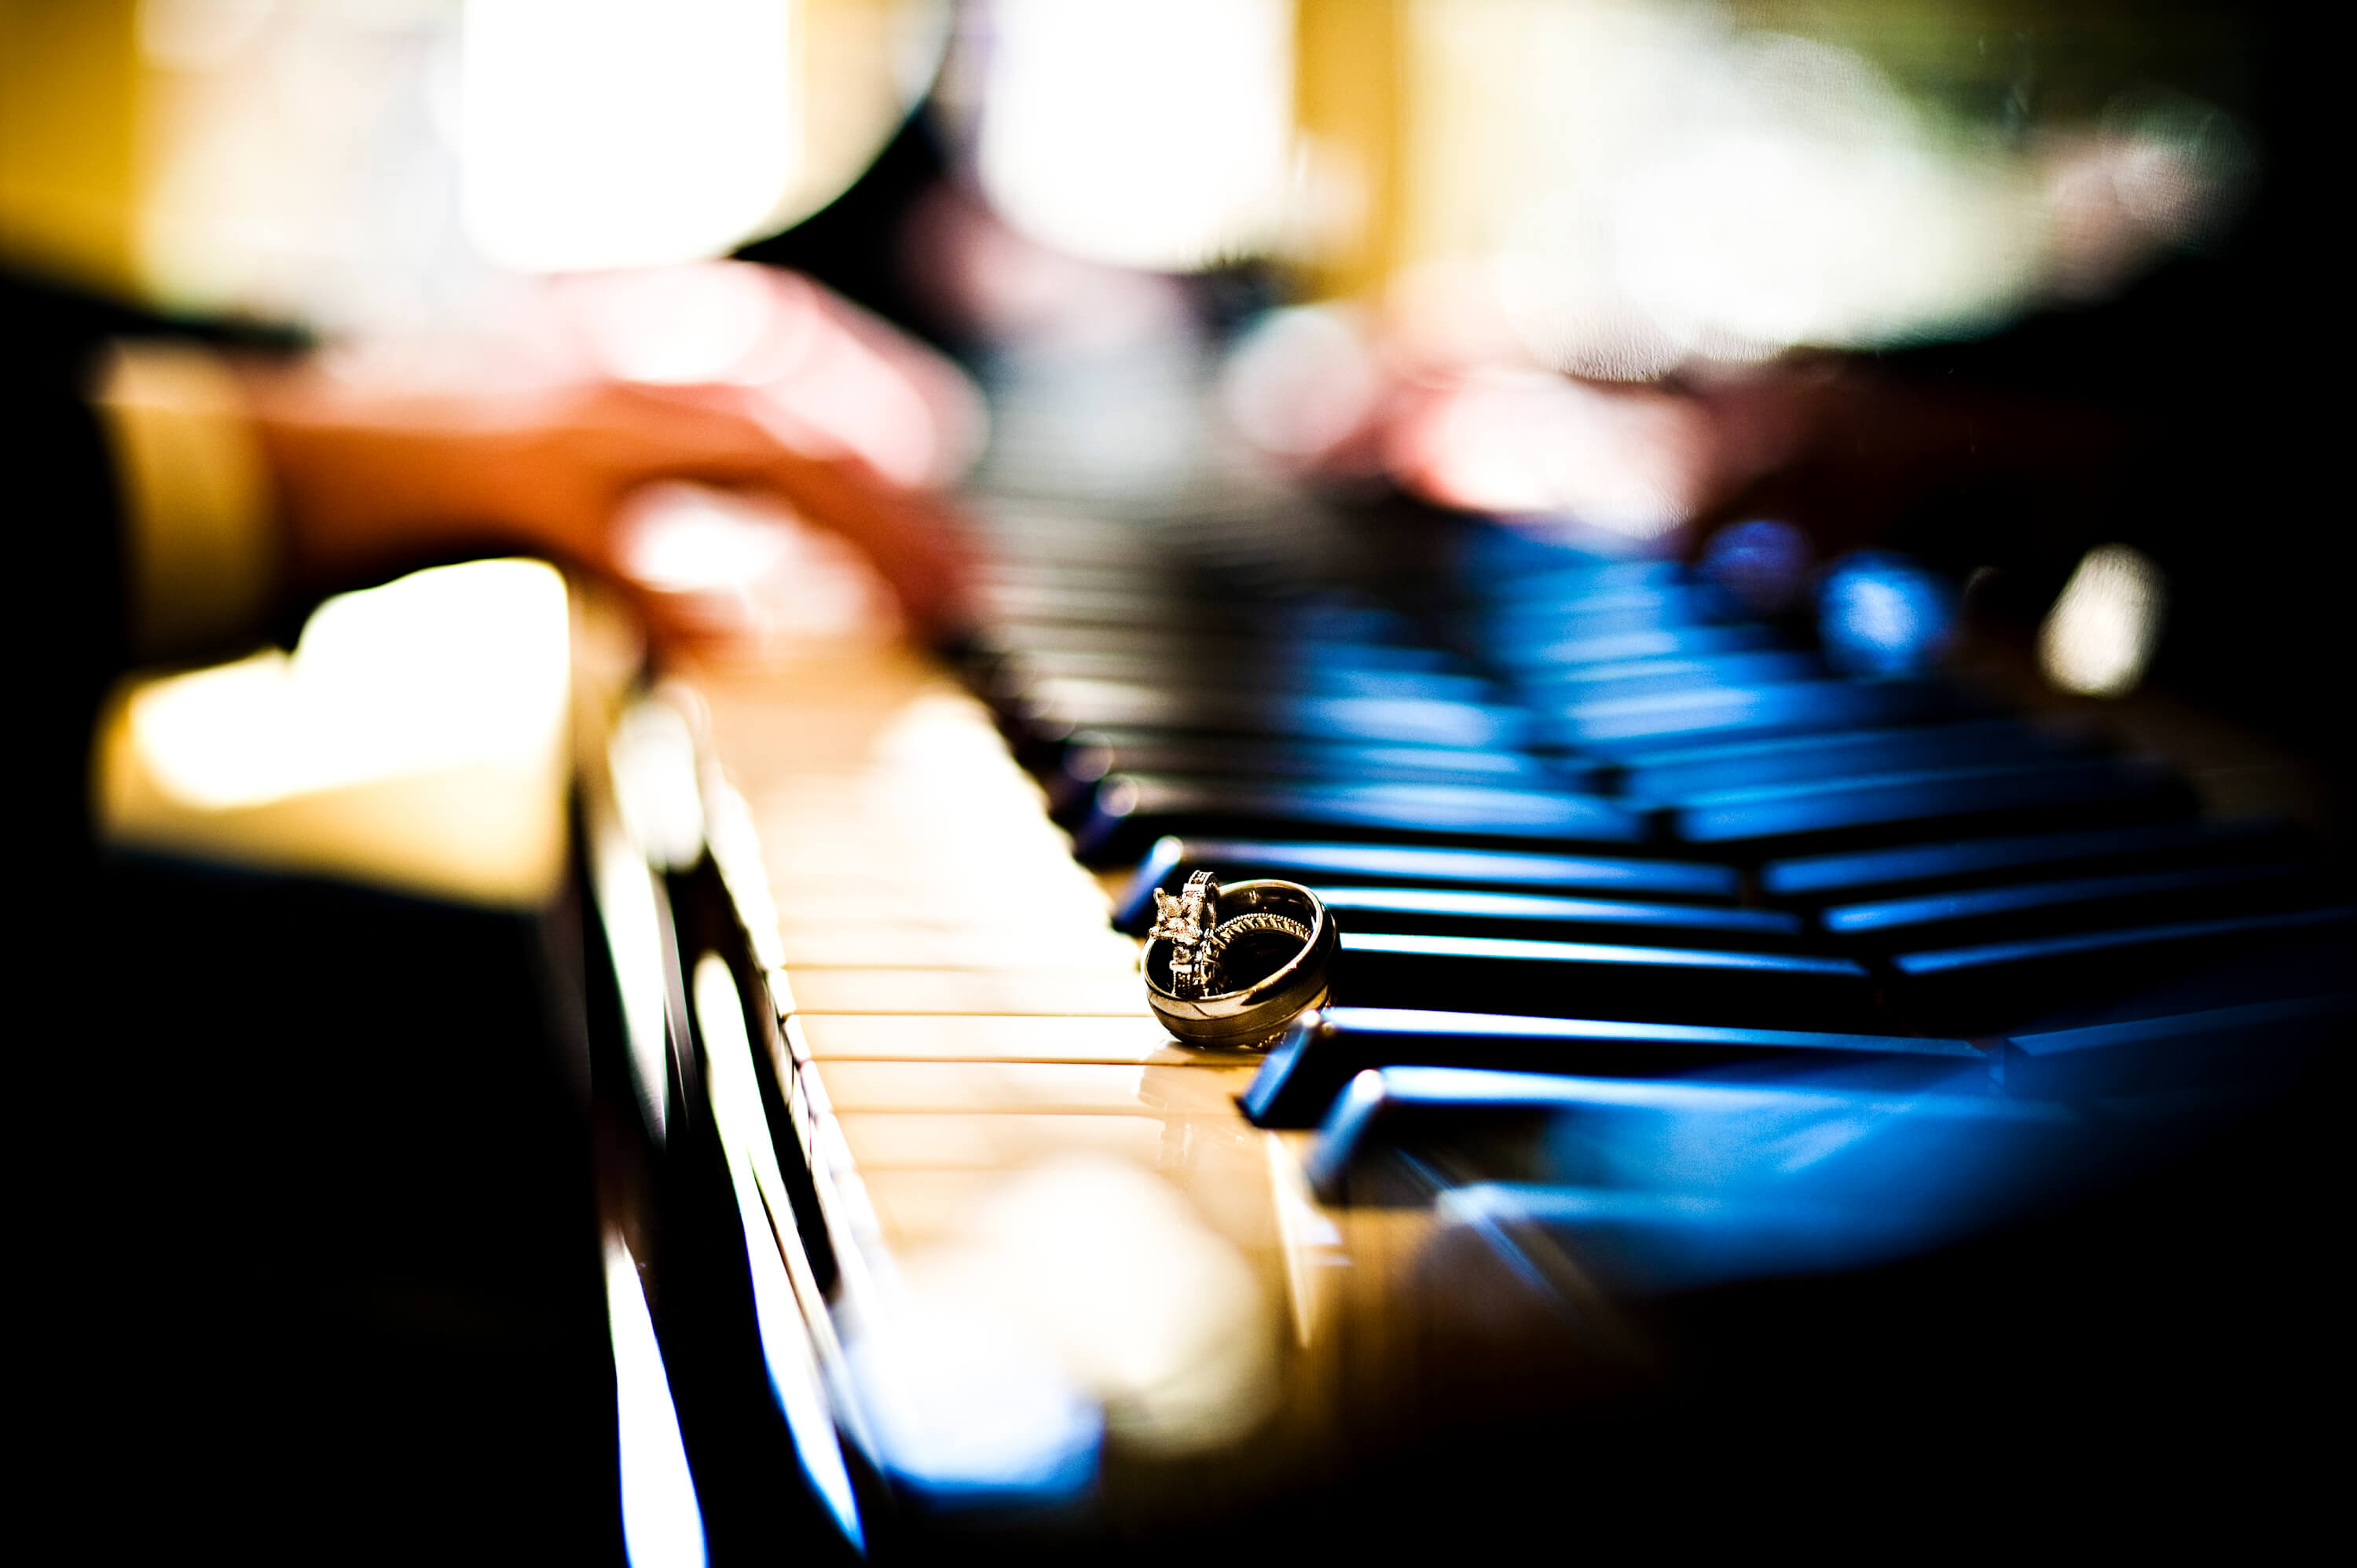 4-Rings-on-Piano--1-of-1--Jason-Rathweg-Reclaimed-Moments.jpg